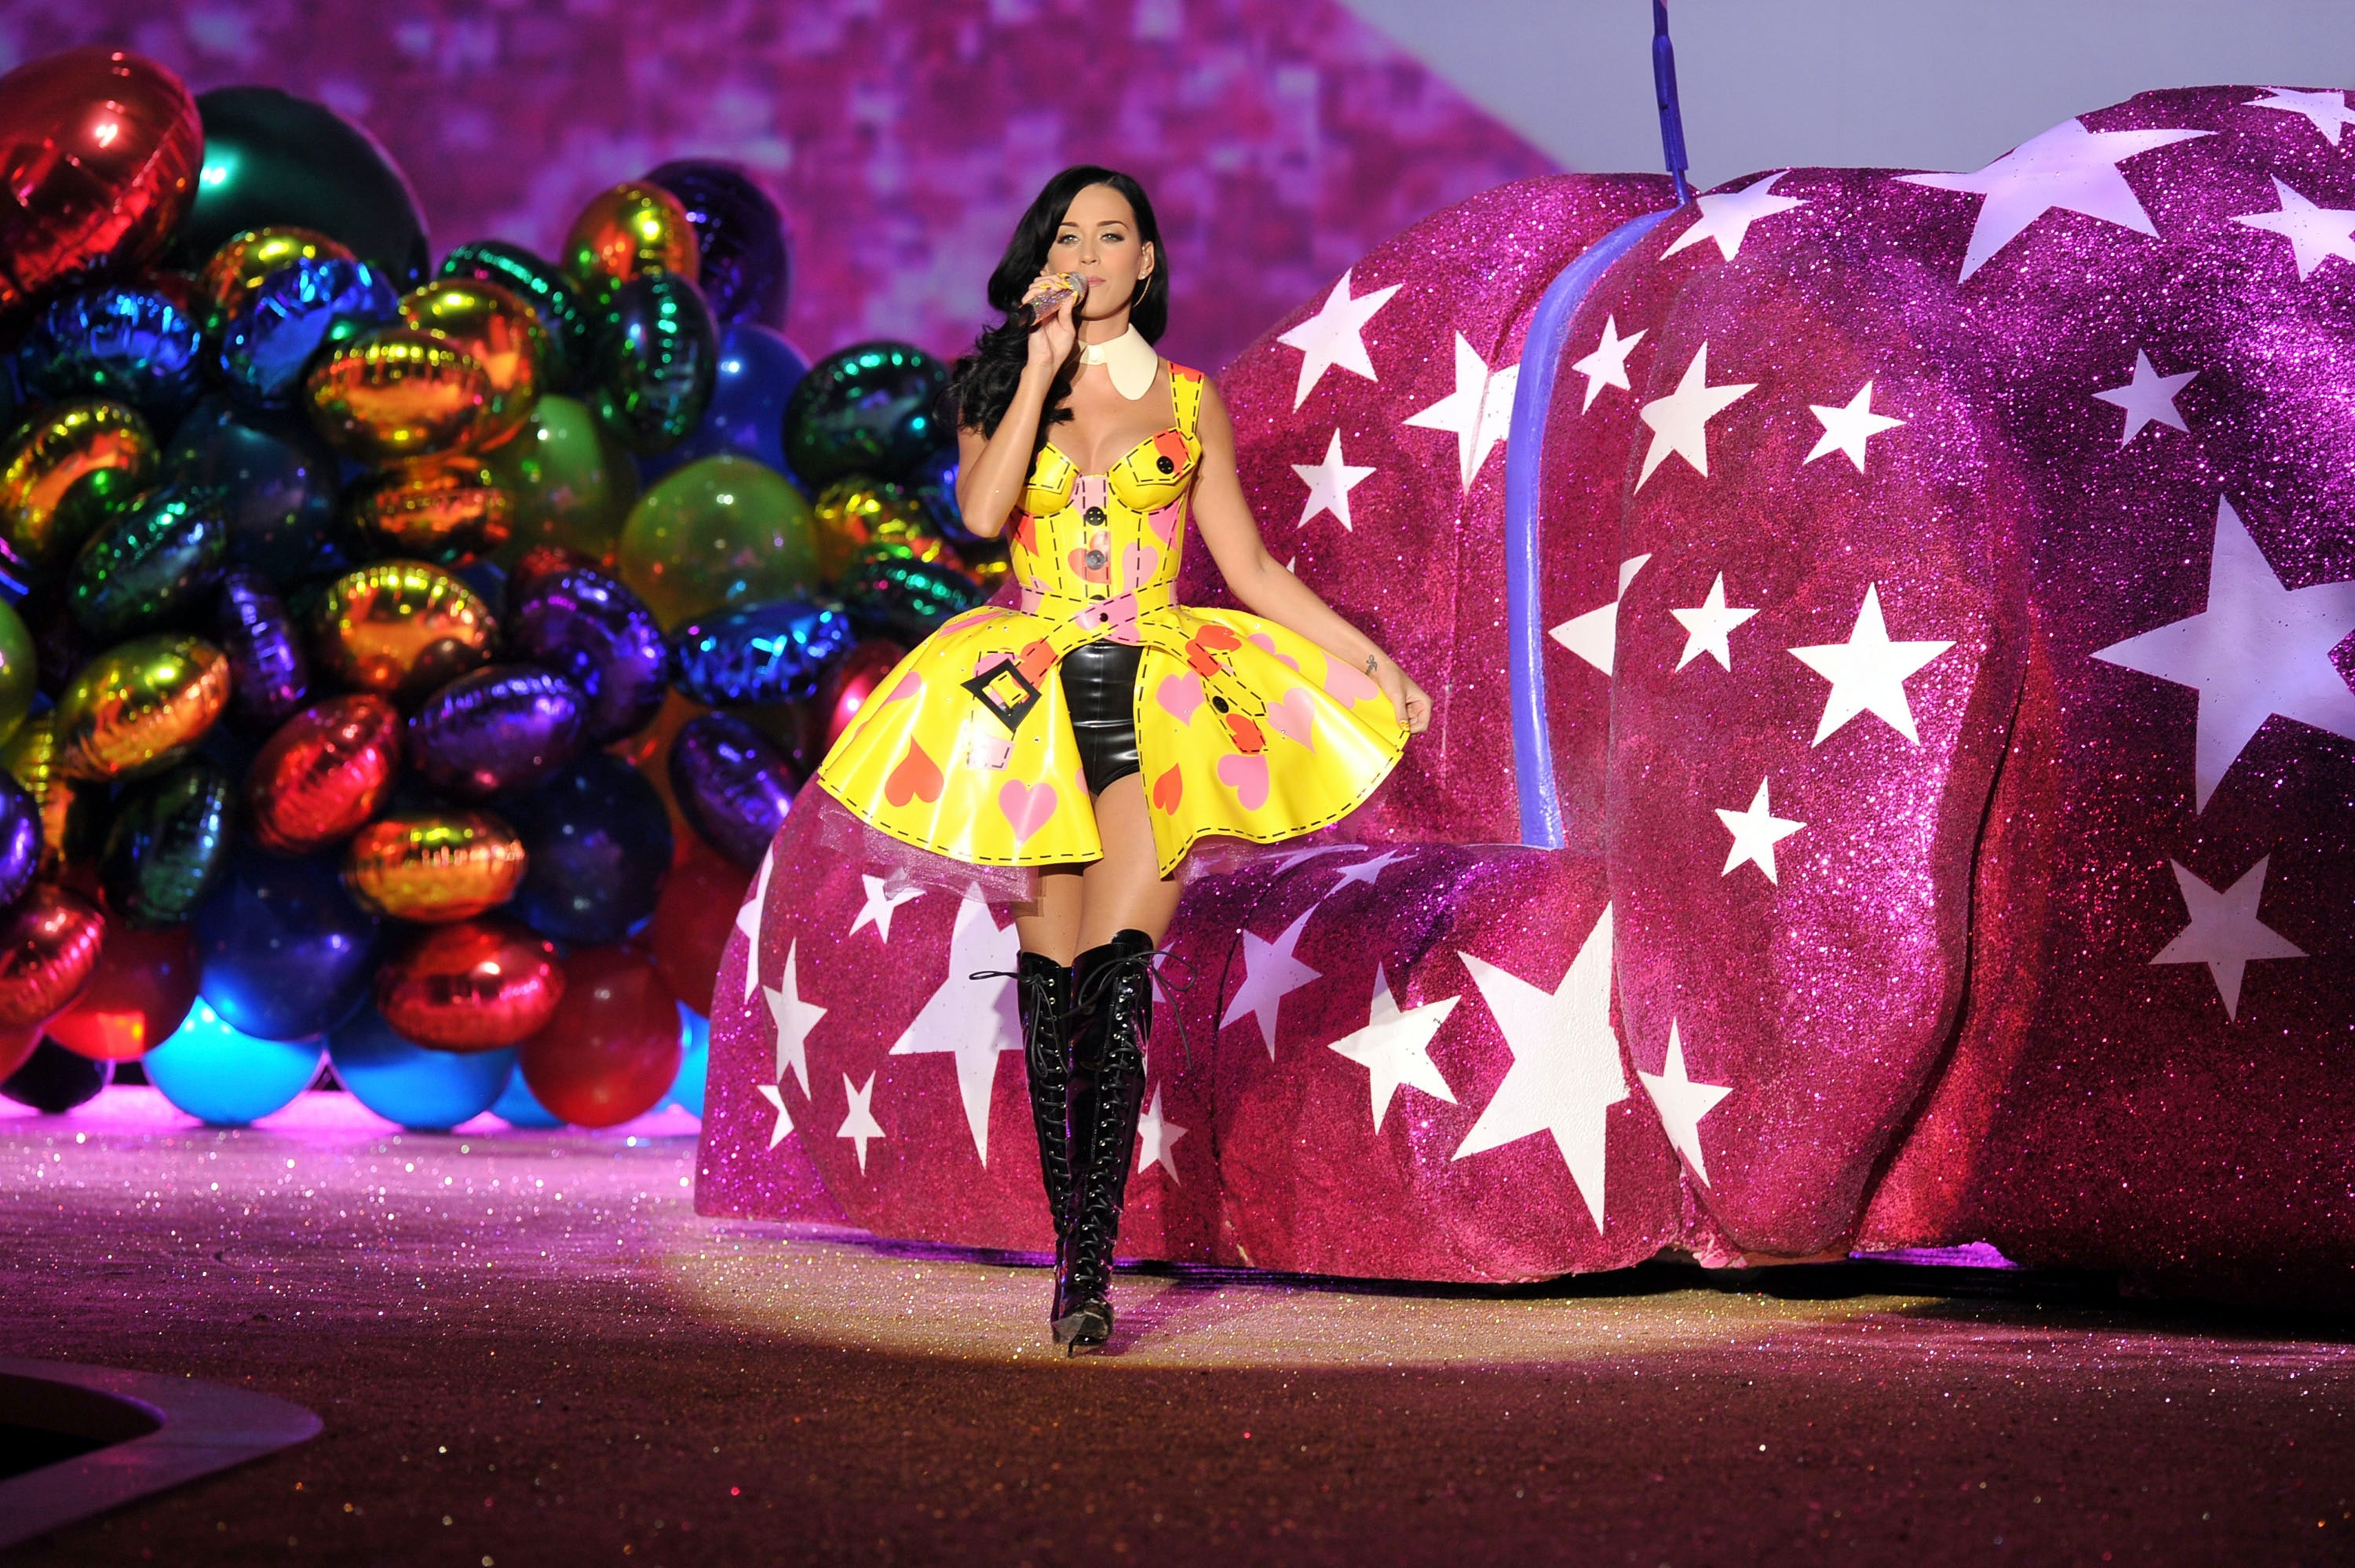 Katy Perry banned from performing at Victoria's Secret Fashion Show in Shanghai